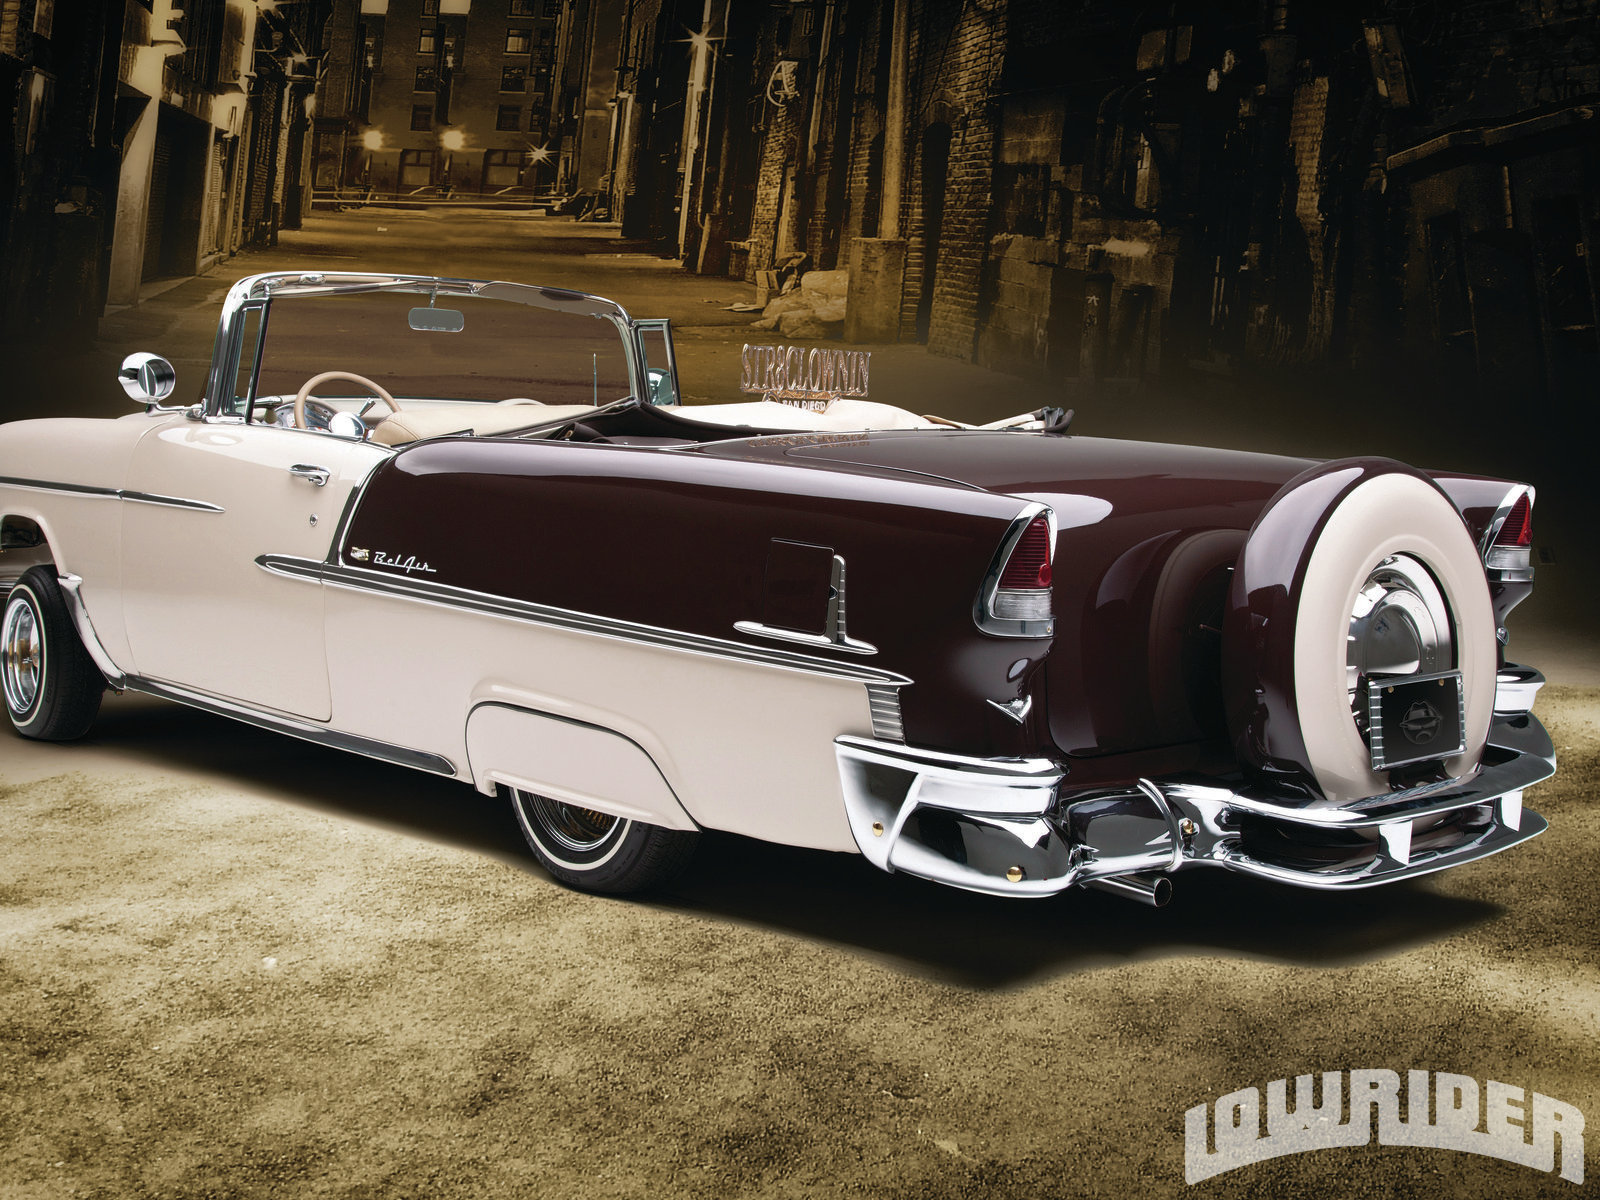 1955 Chevrolet Bel Air - Lowrider Magazine